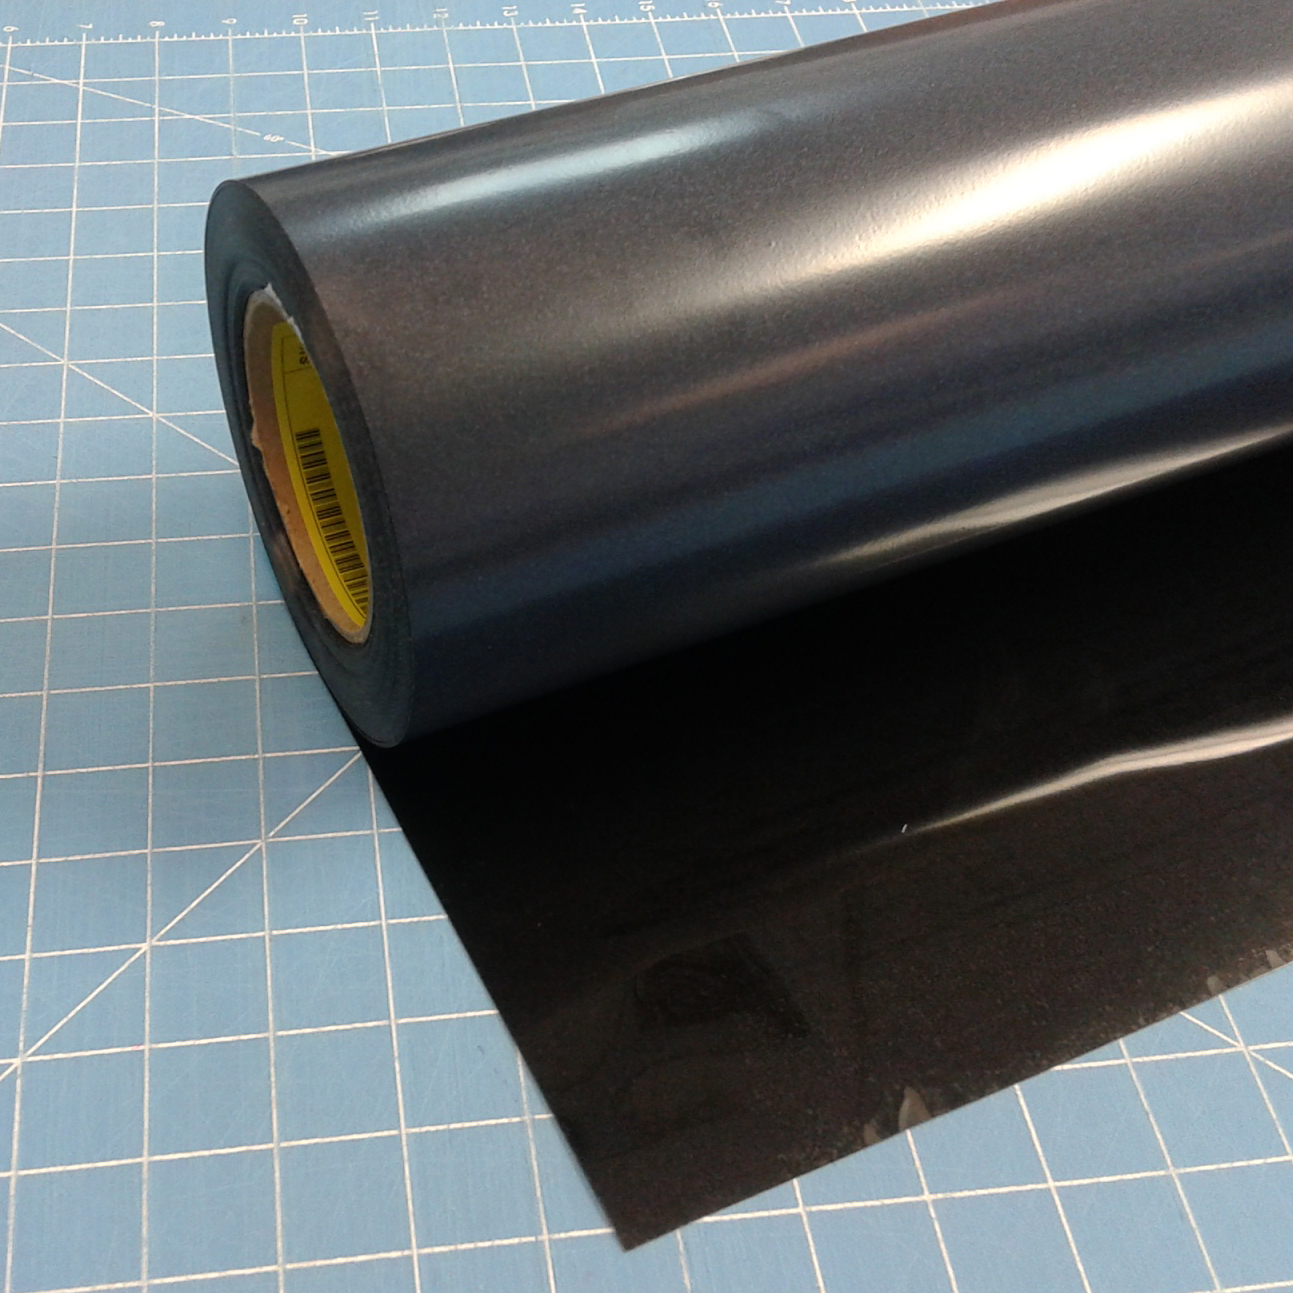 "Siser Easyweed Stretch Black 15"" x 5' Iron on Heat Transfer Vinyl Roll, HTV"